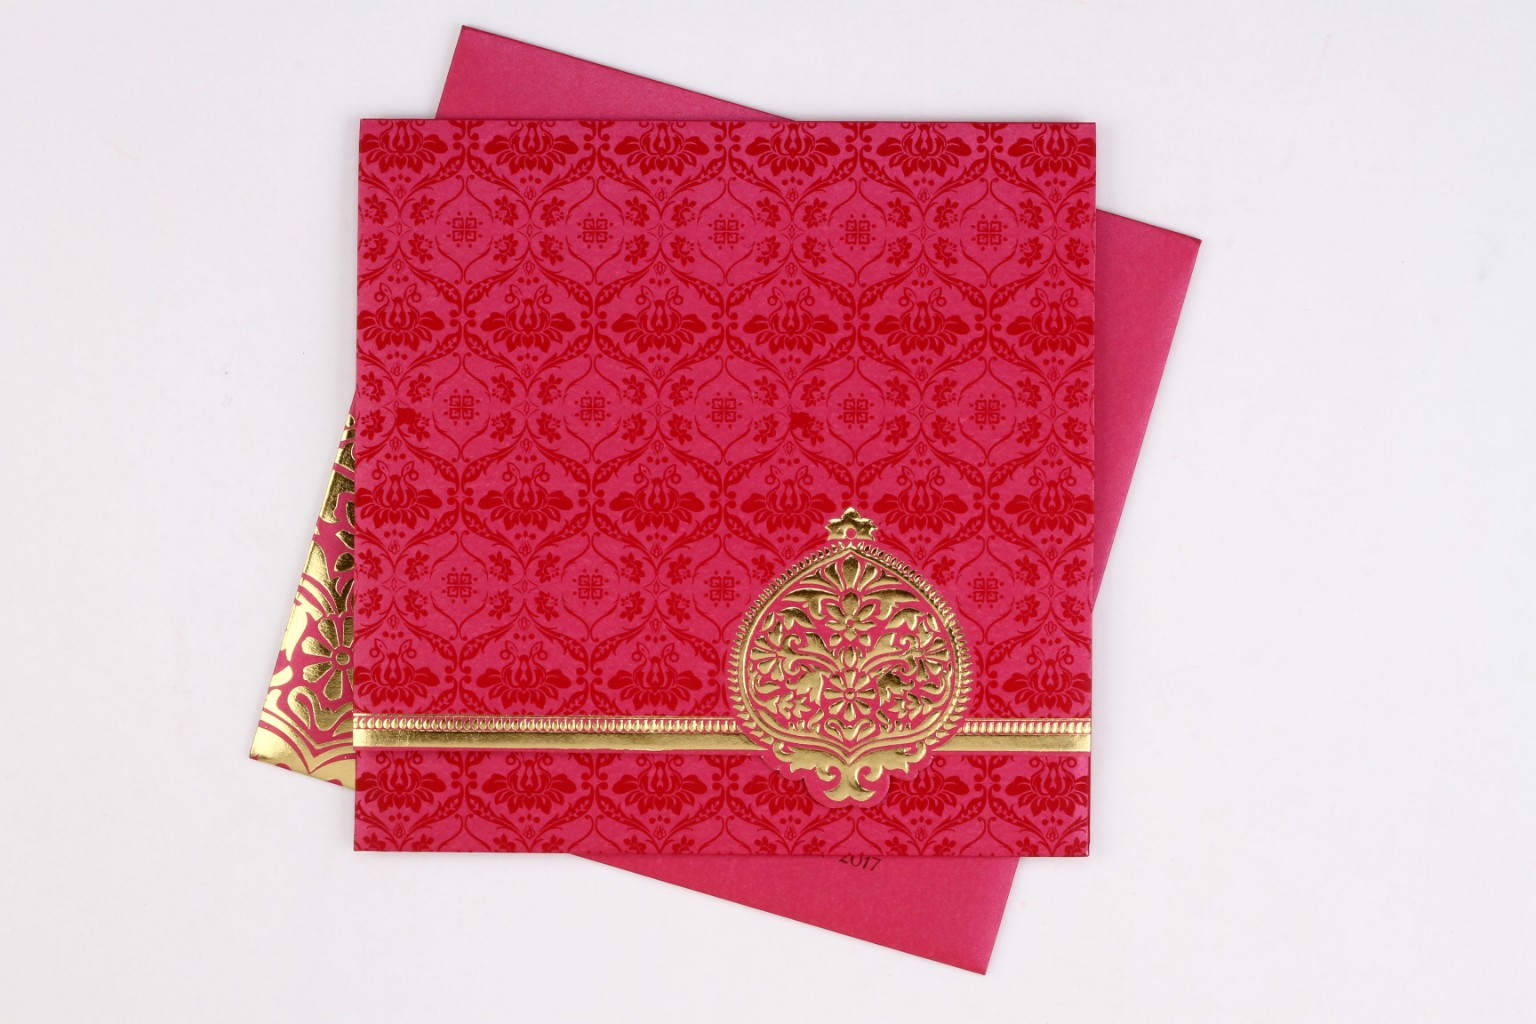 Indian wedding invite in Pink with traditional motif design i